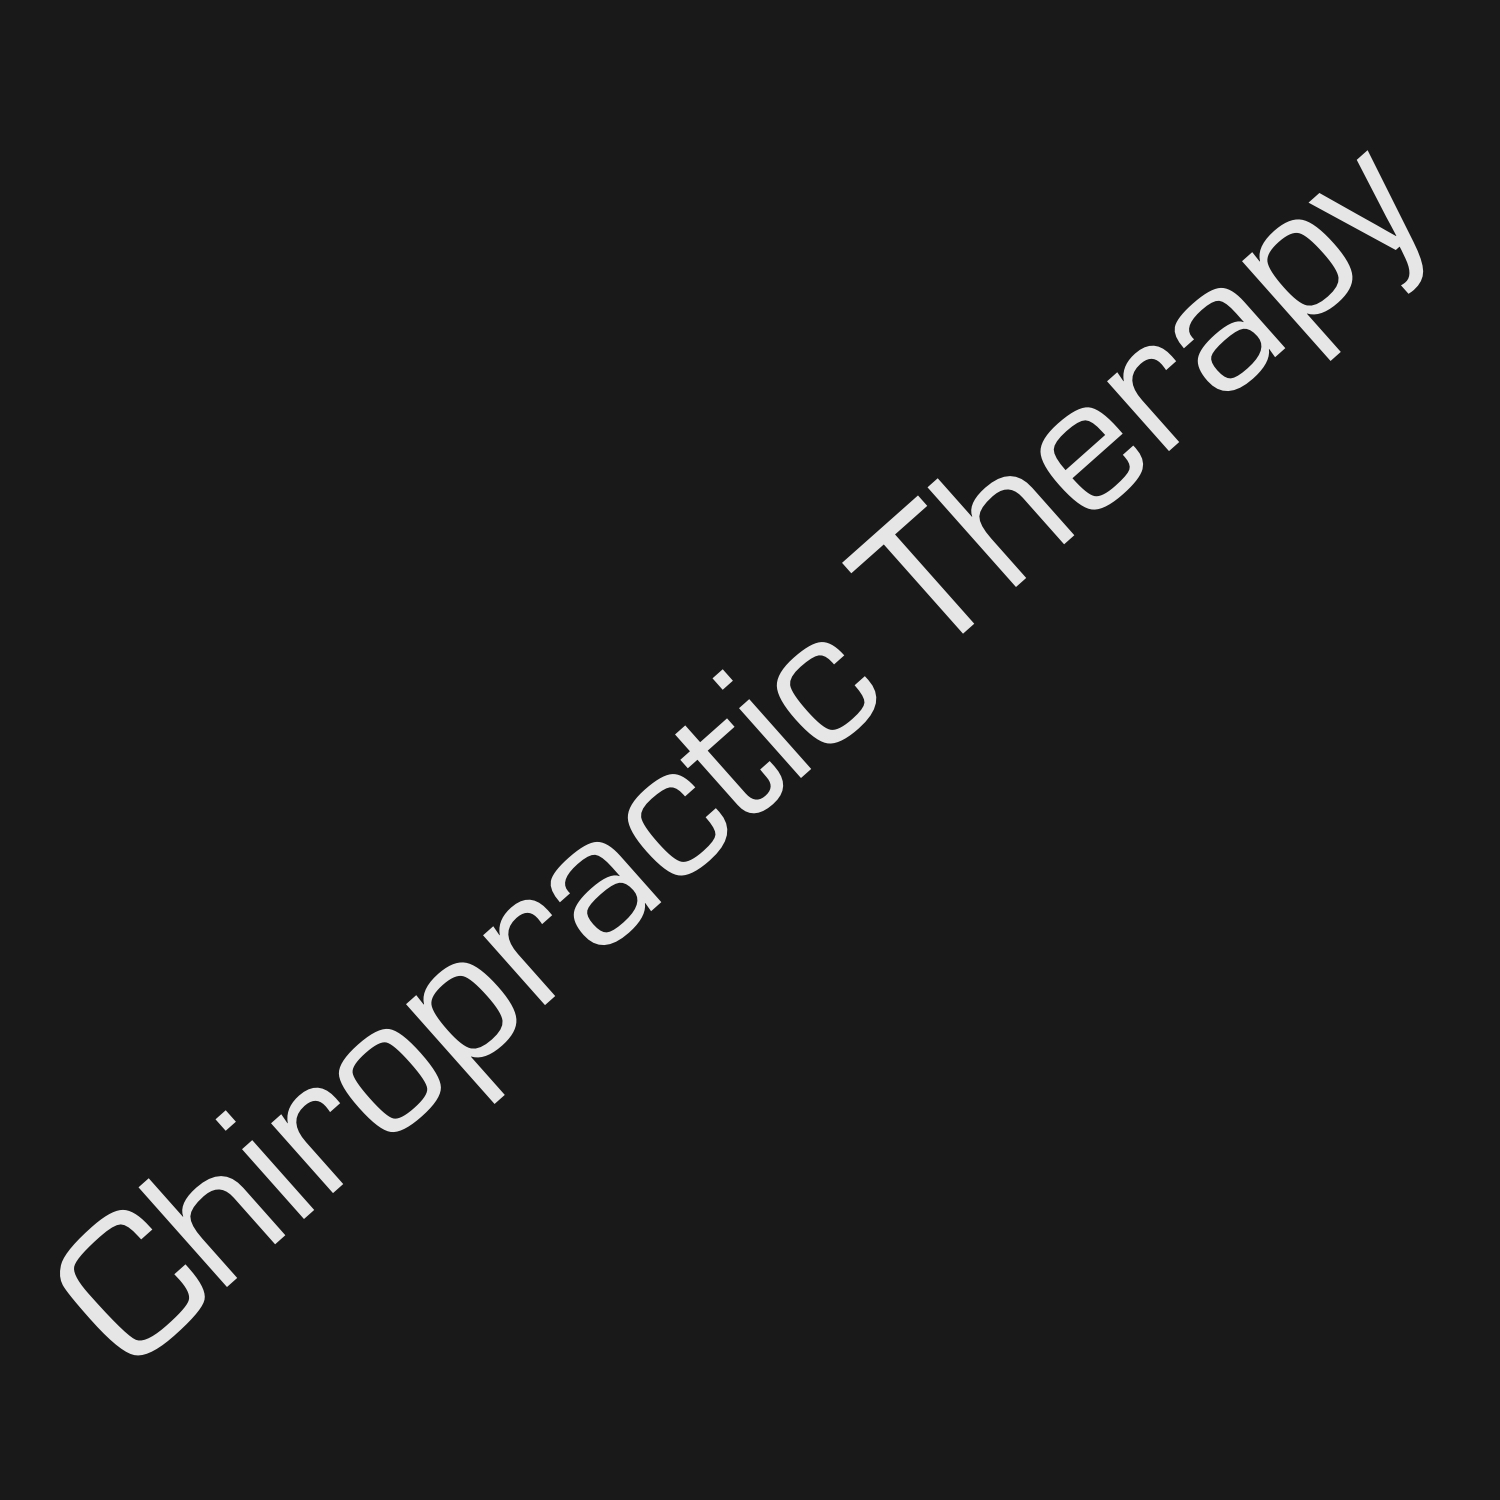 Chiropractic Therapy.jpeg